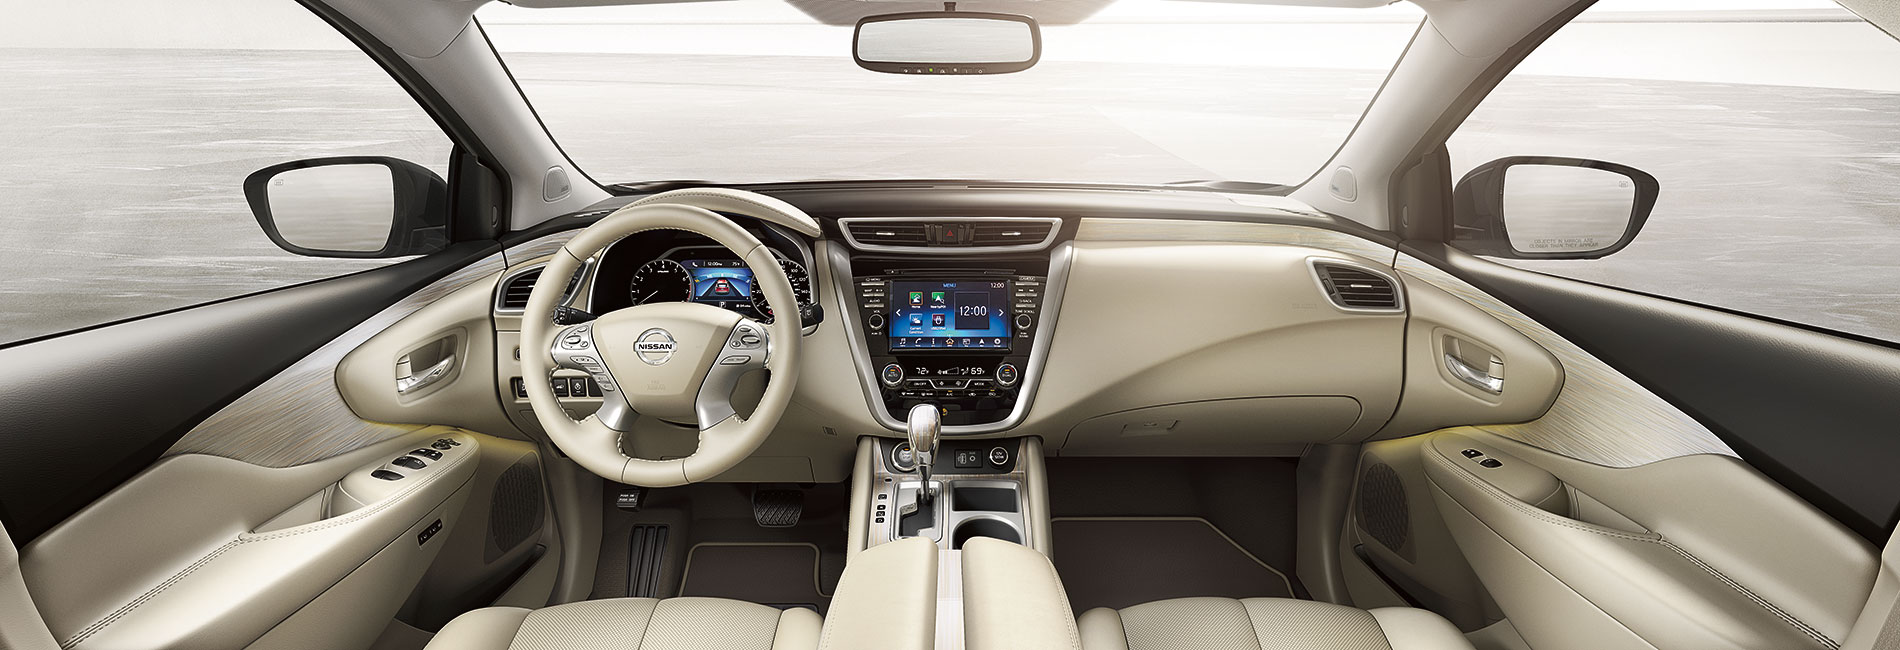 Nissan Murano Interior Vehicle Features